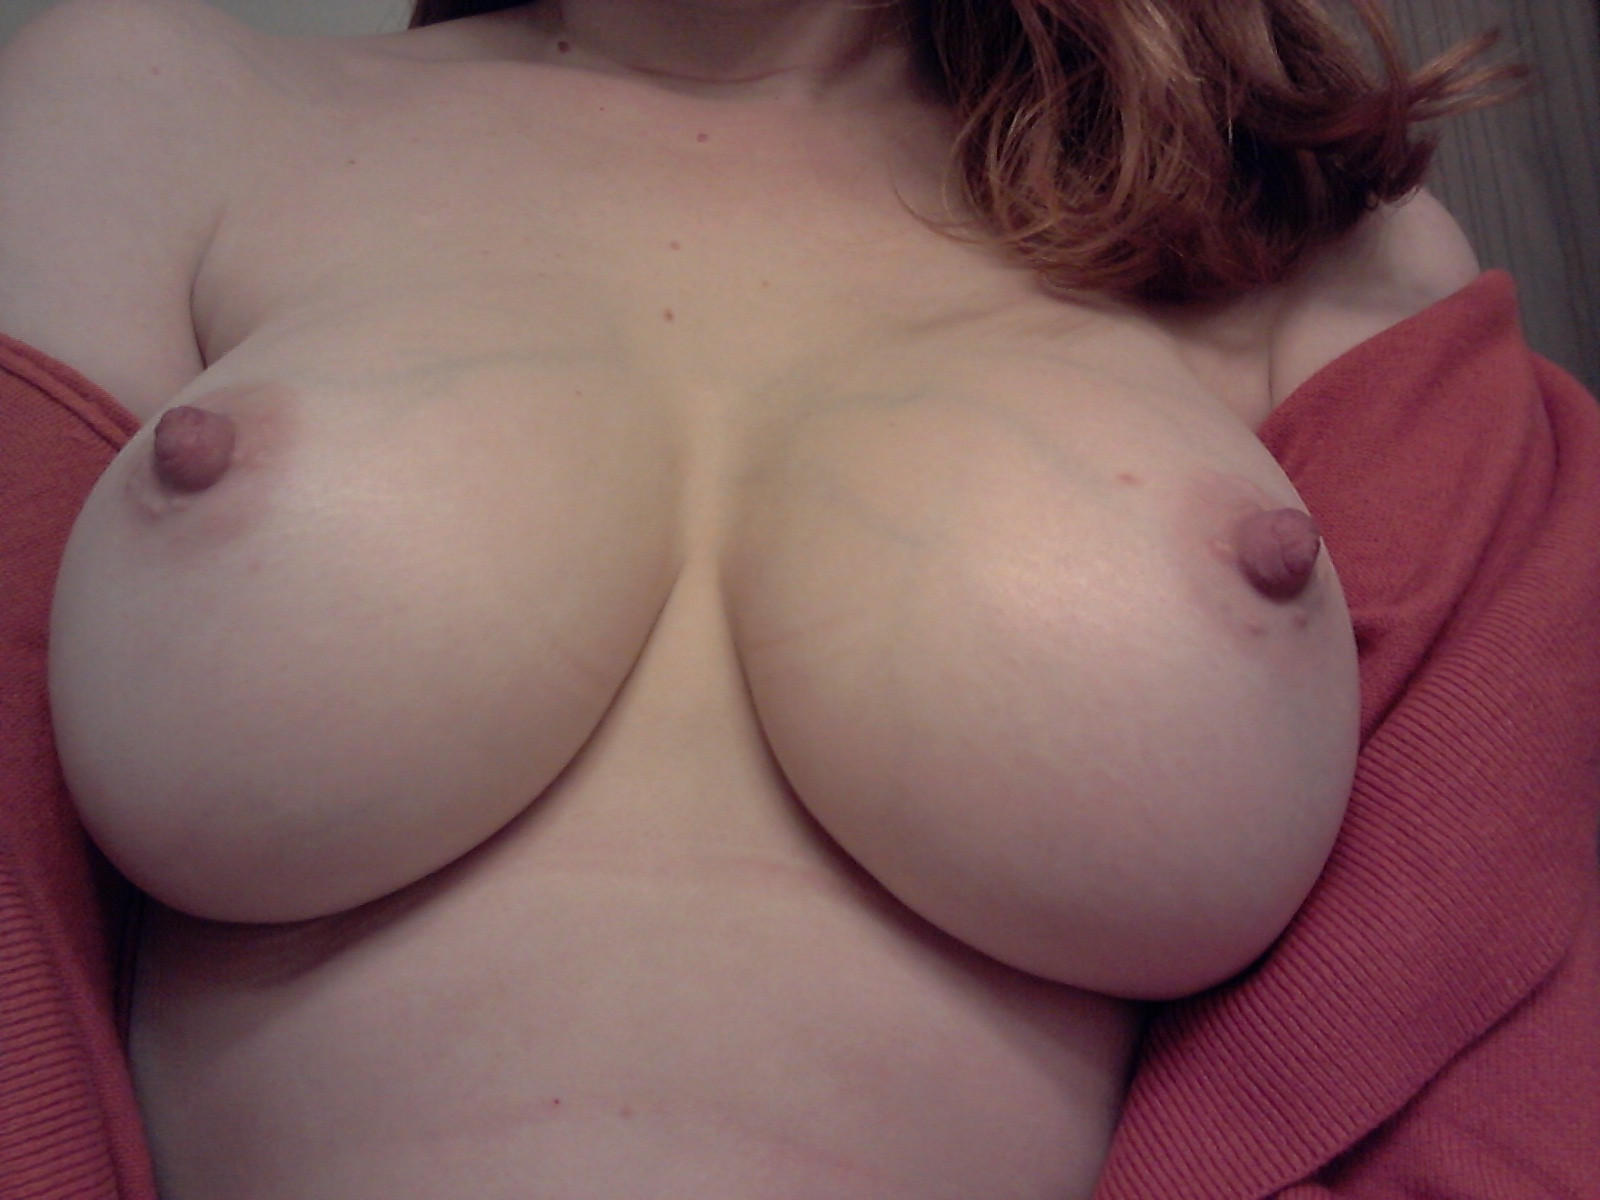 Anal storm amateur boob job fucking is not 6